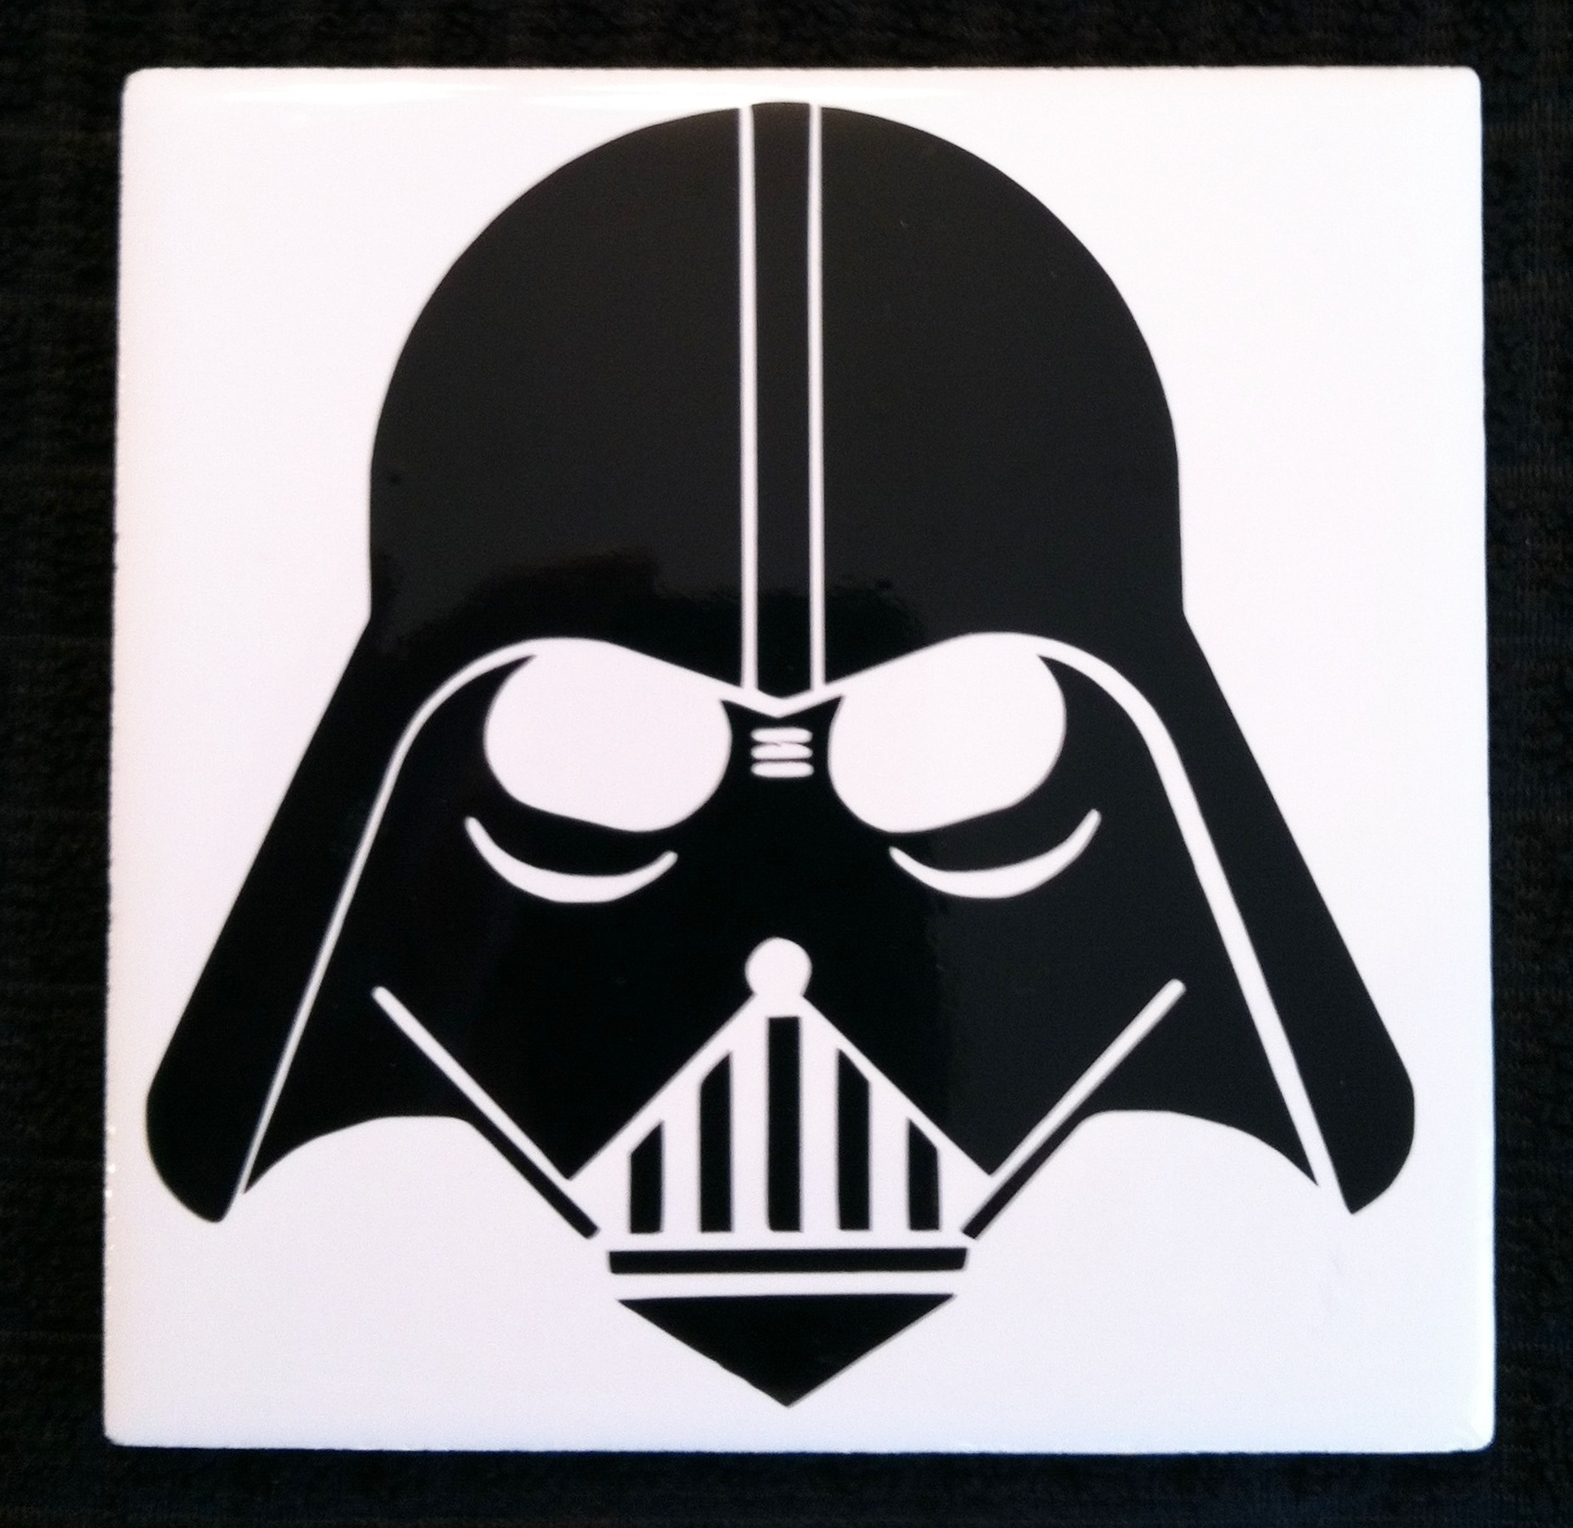 Darth vader clipart silhouette. Pencil and in color